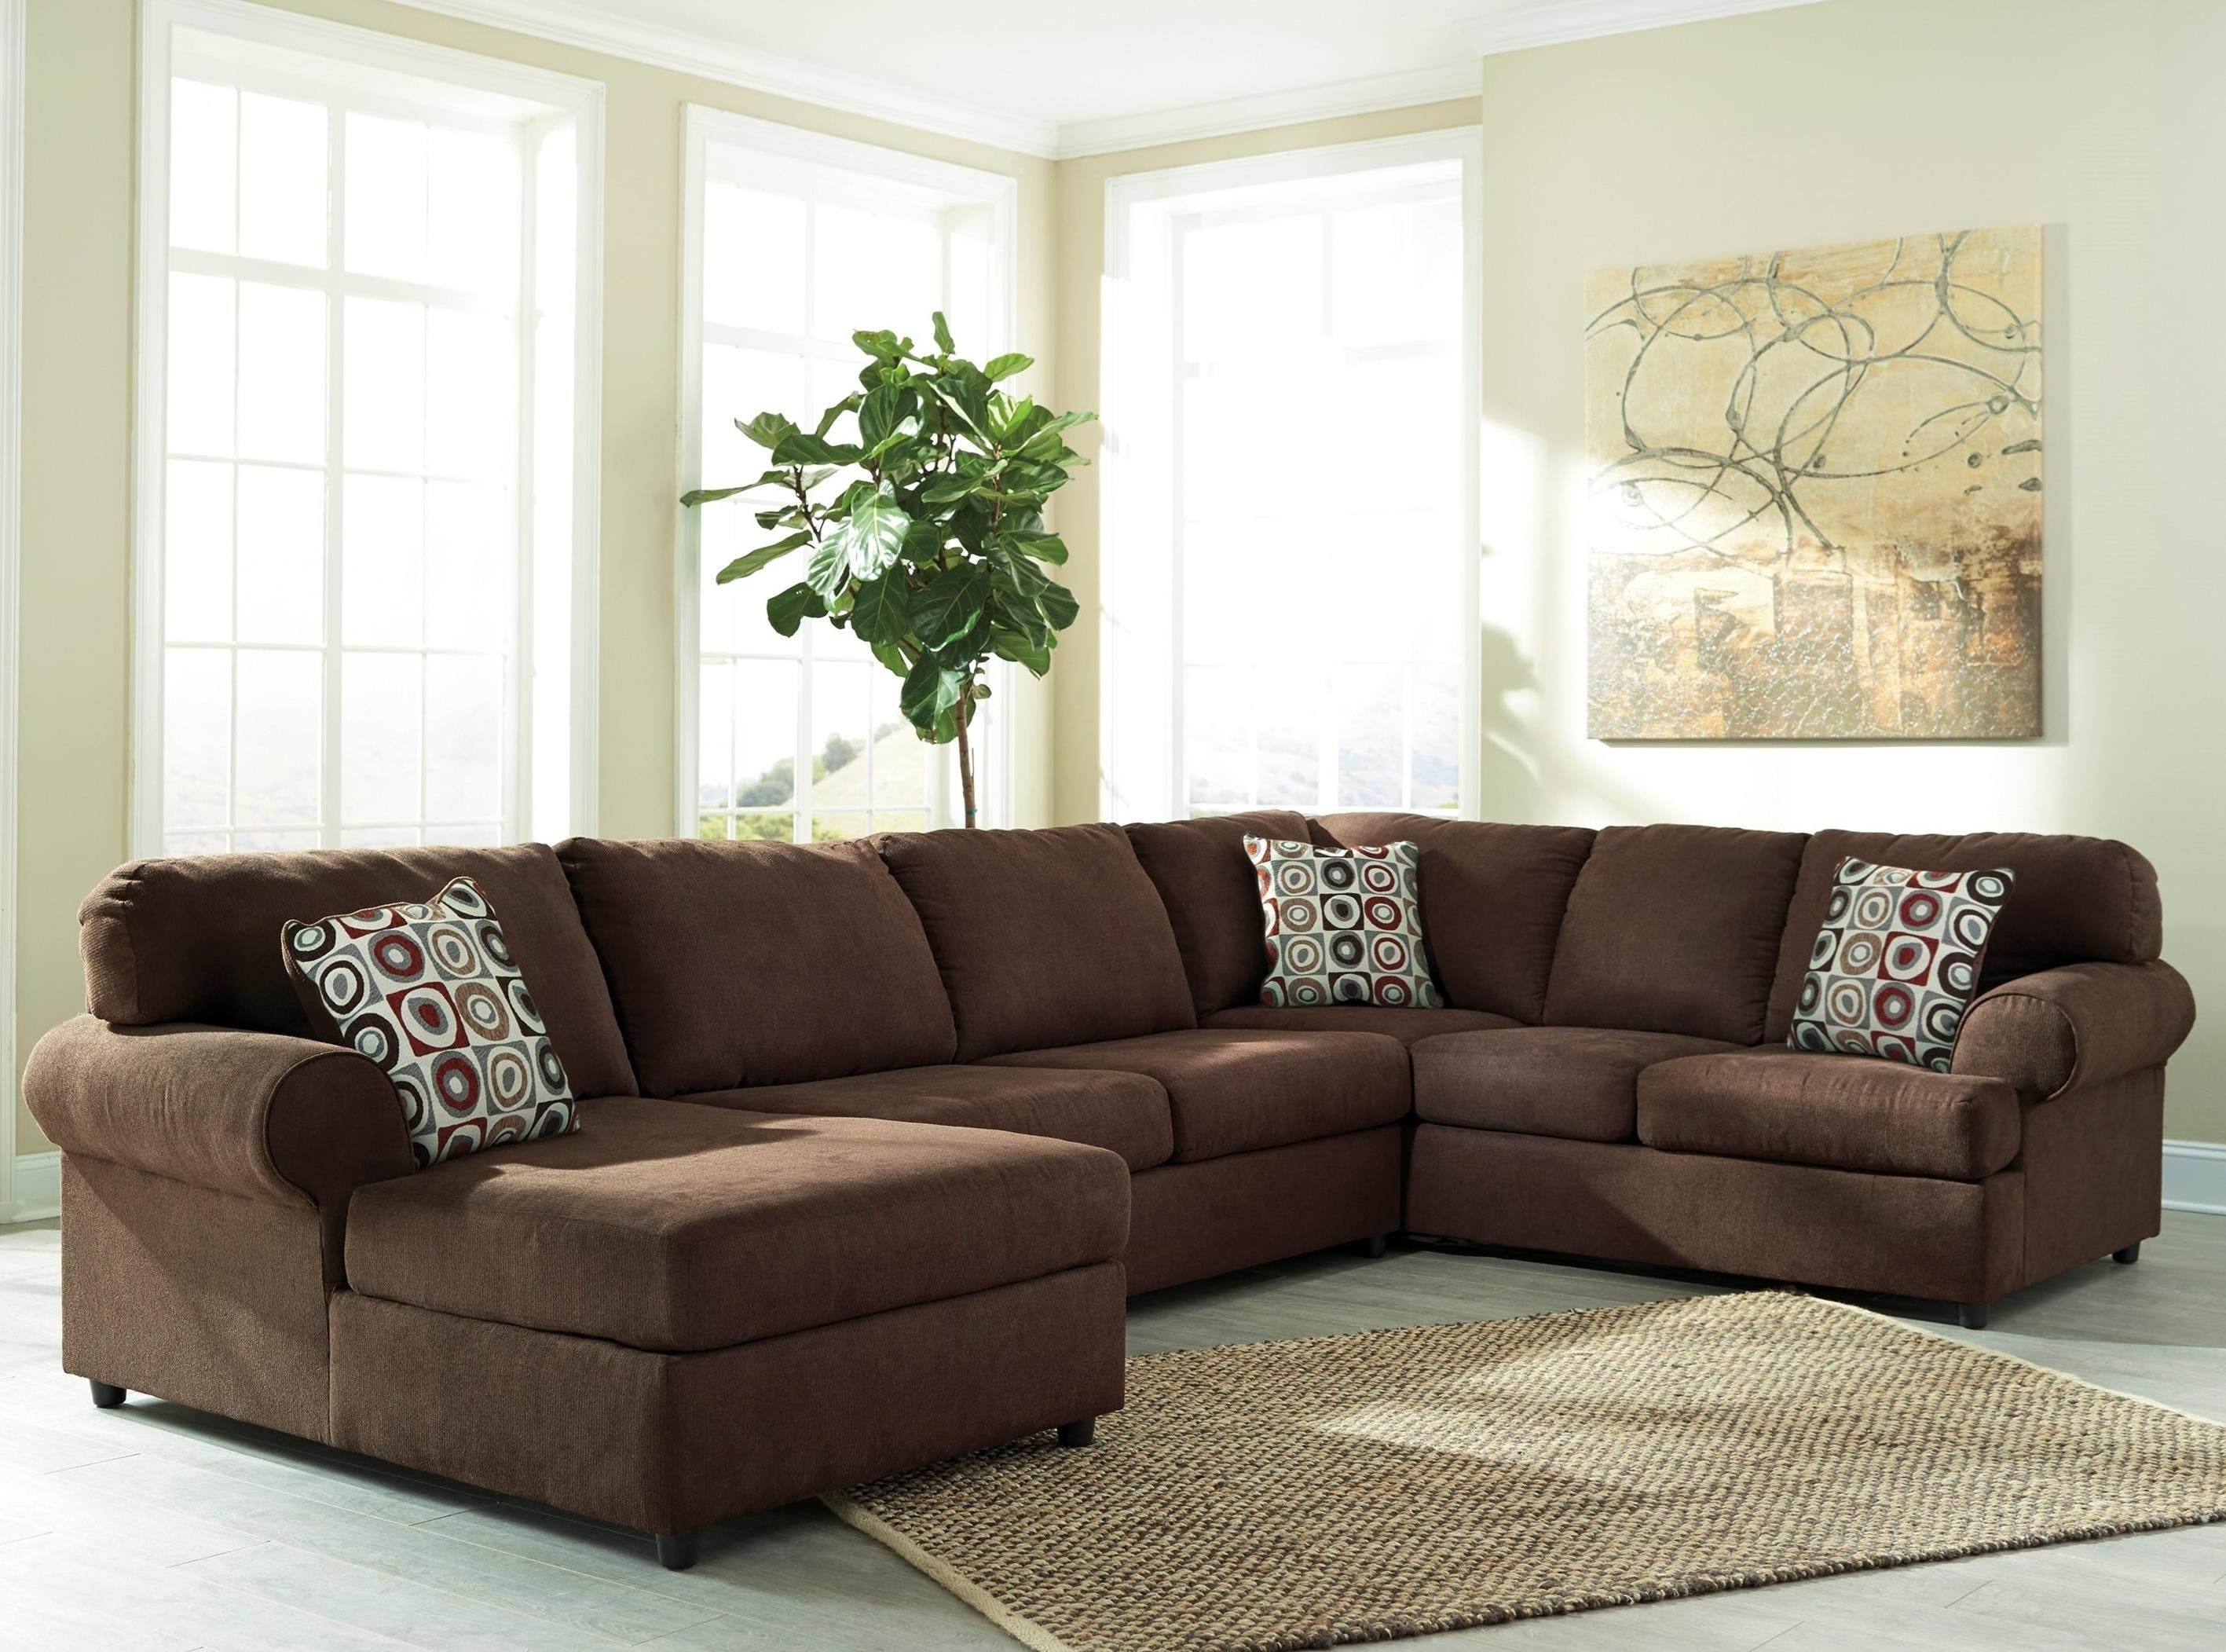 3 Piece Sectional Malbry Point W Laf Chaise Living Spaces 223533 0 with Malbry Point 3 Piece Sectionals With Raf Chaise